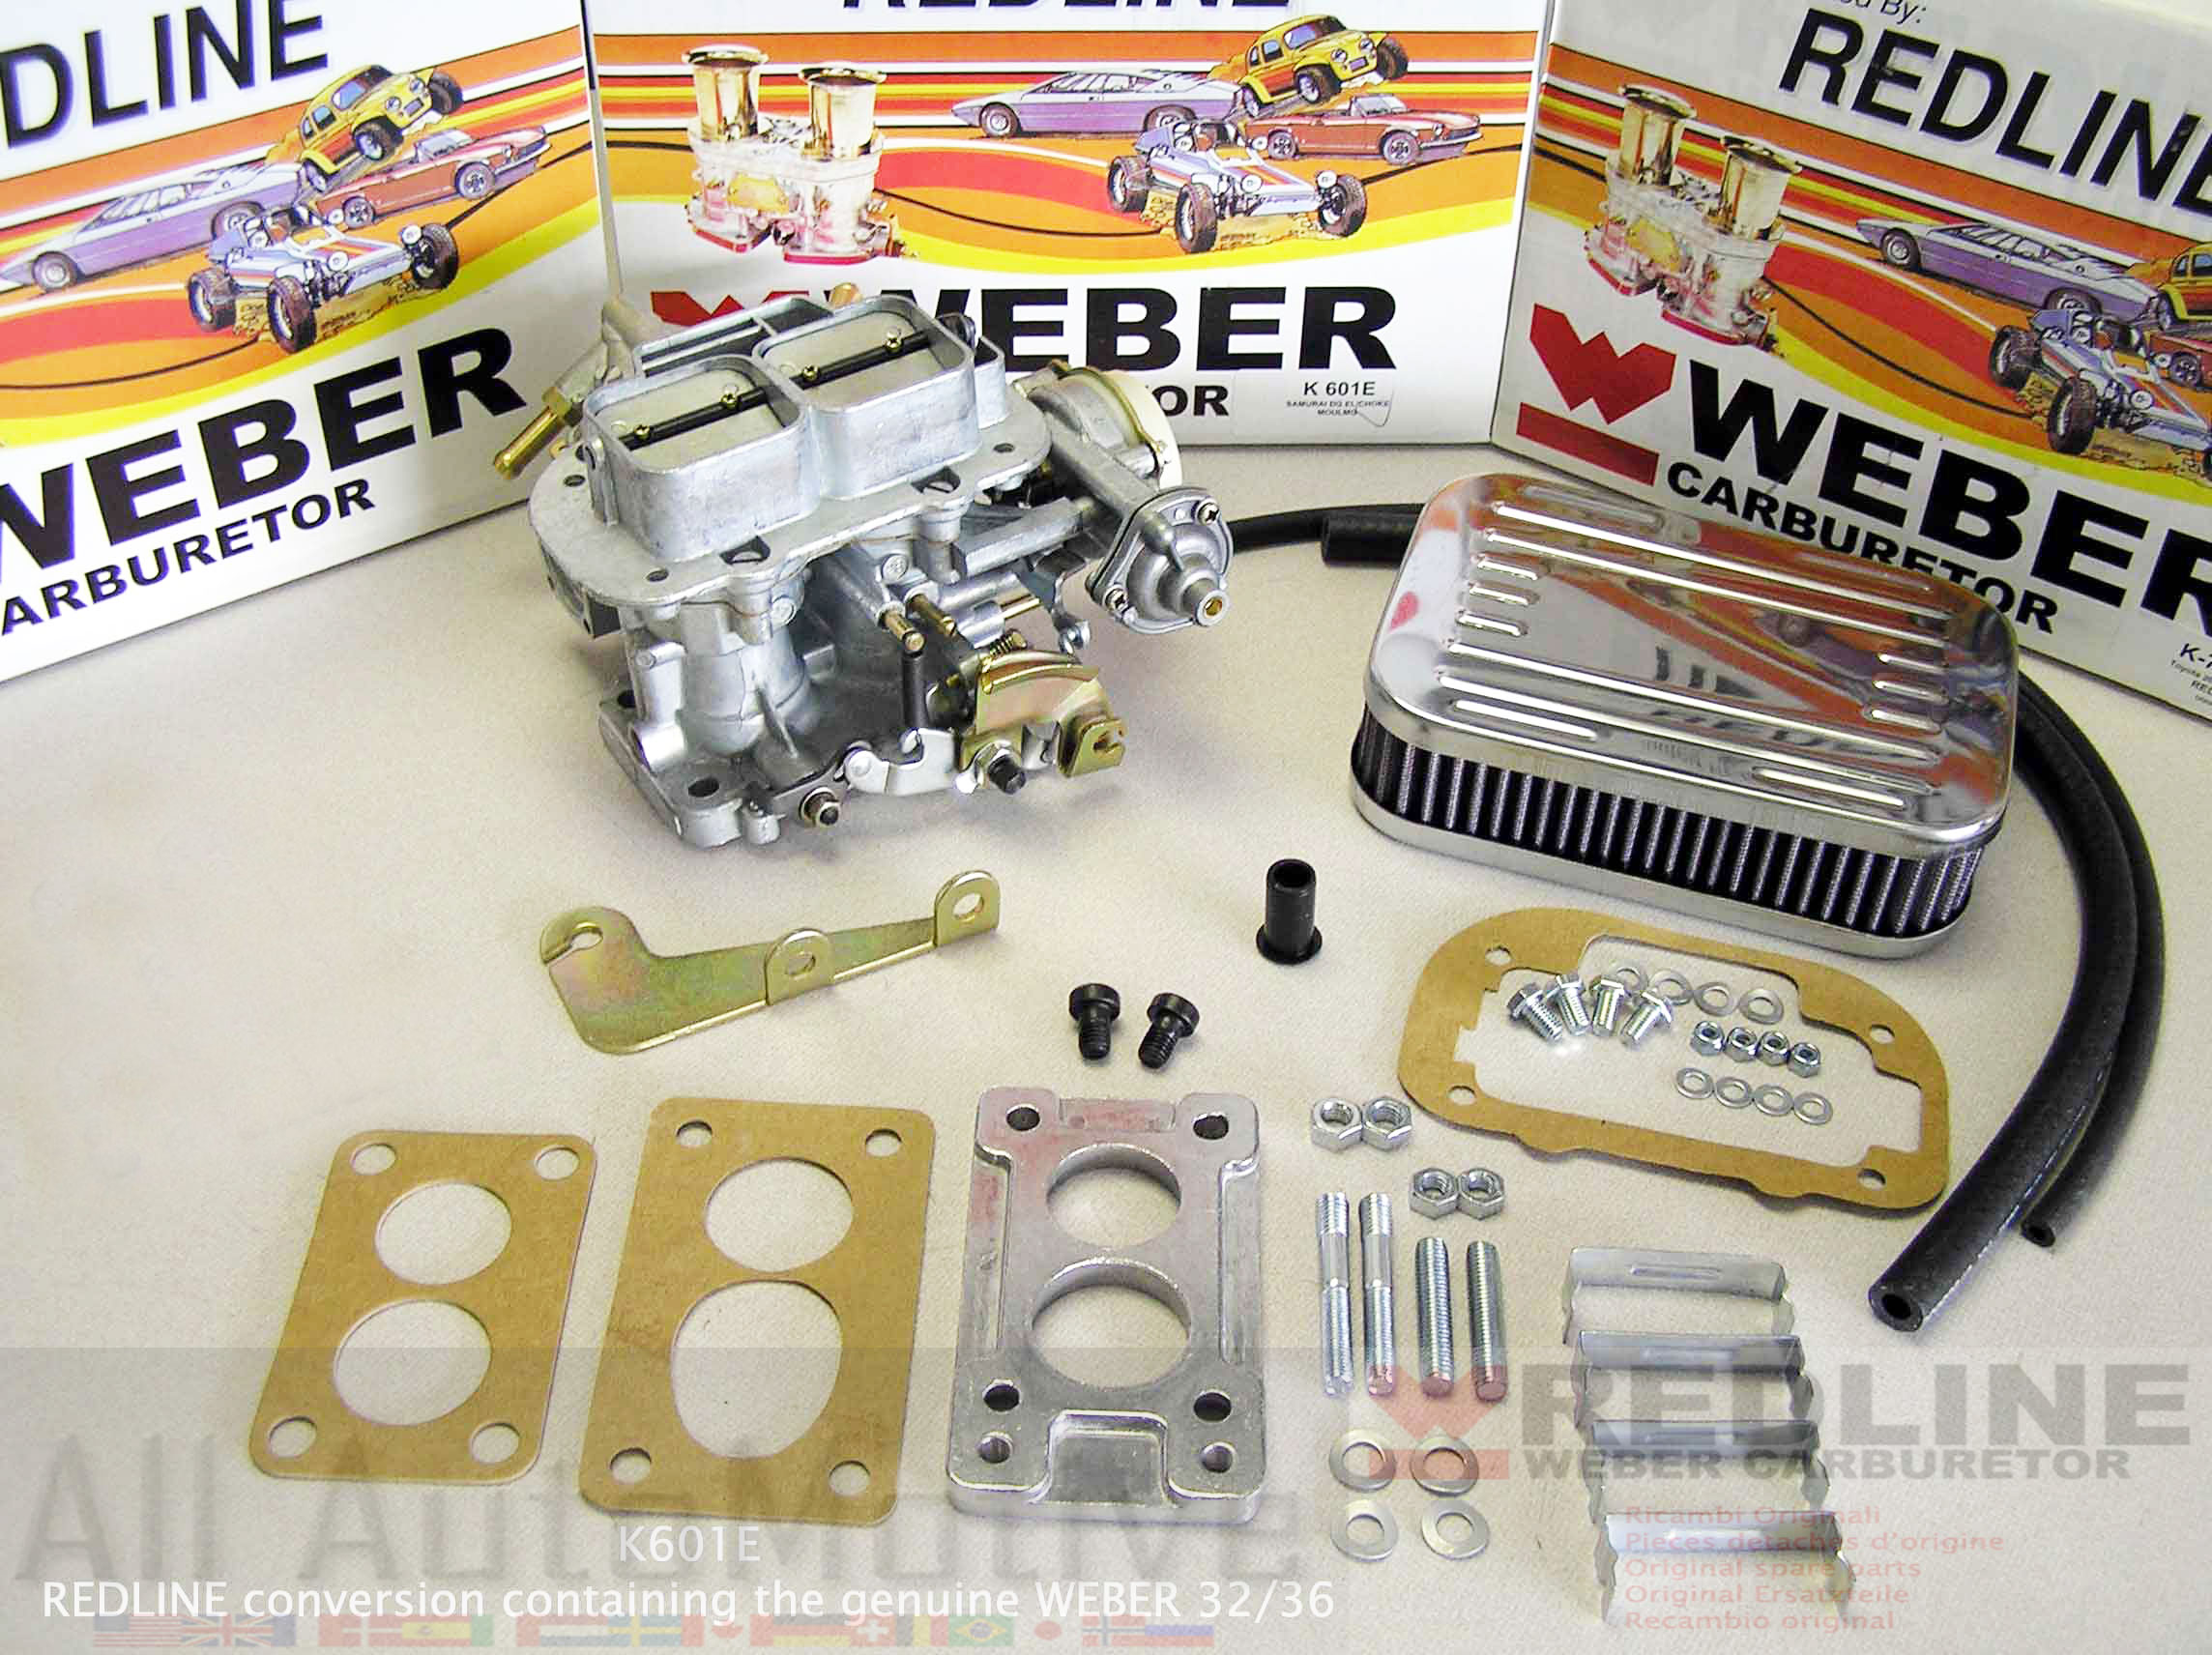 Details About Suzuki Samurai Weber Carb Conversion Kit Electric Choke